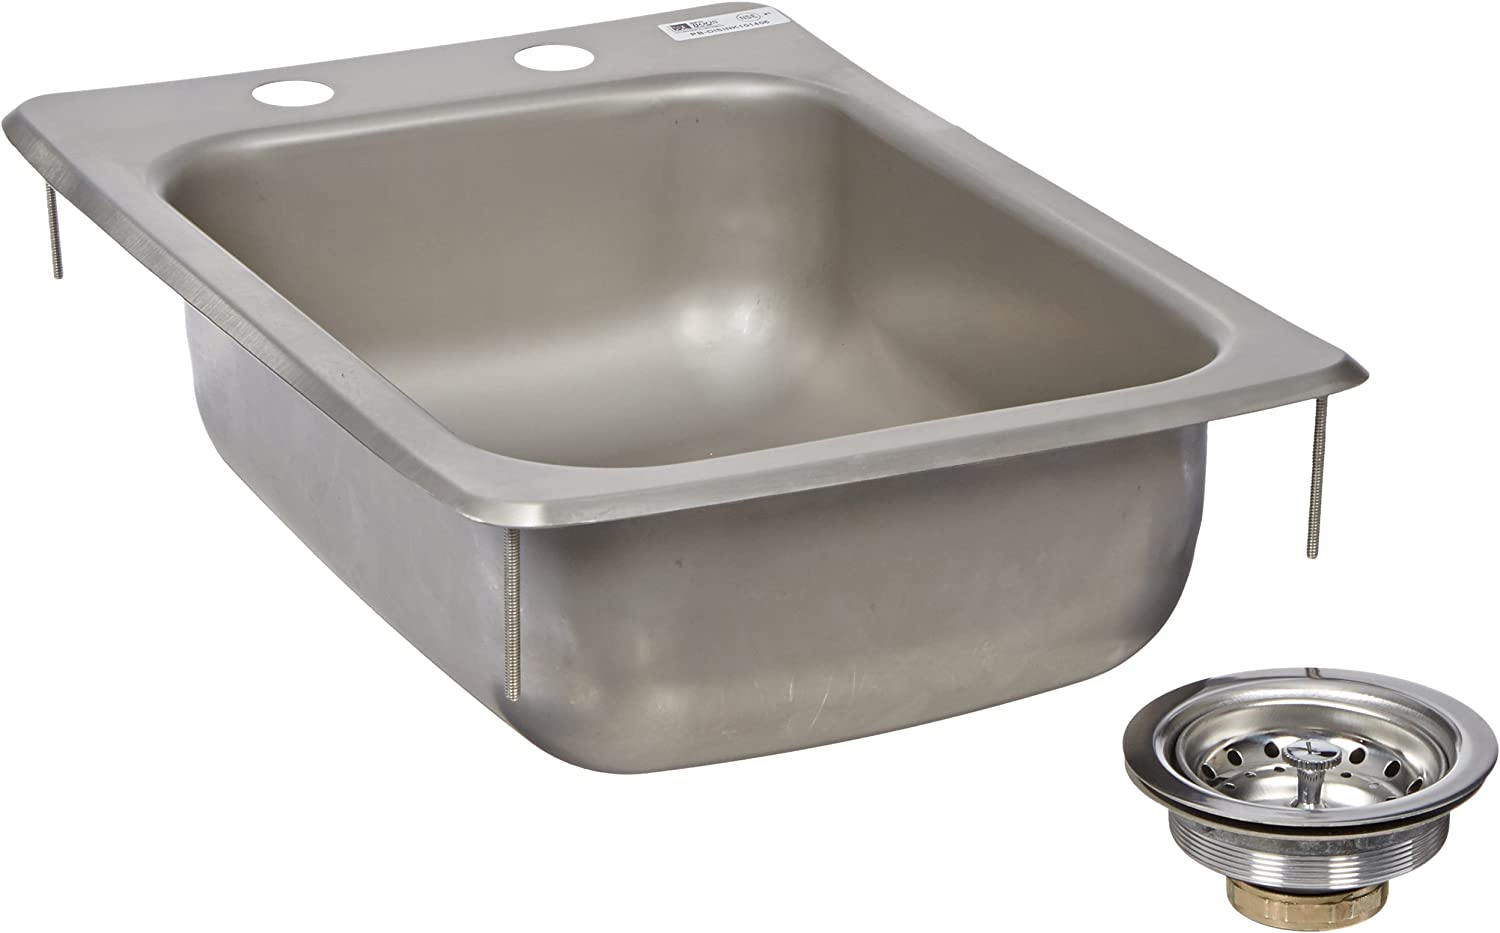 John Boos PB-DISINK101405 Deck Mount Pro-Bowl Drop-in Hand Sink, 14  Length x 10  Width x 5  Depth